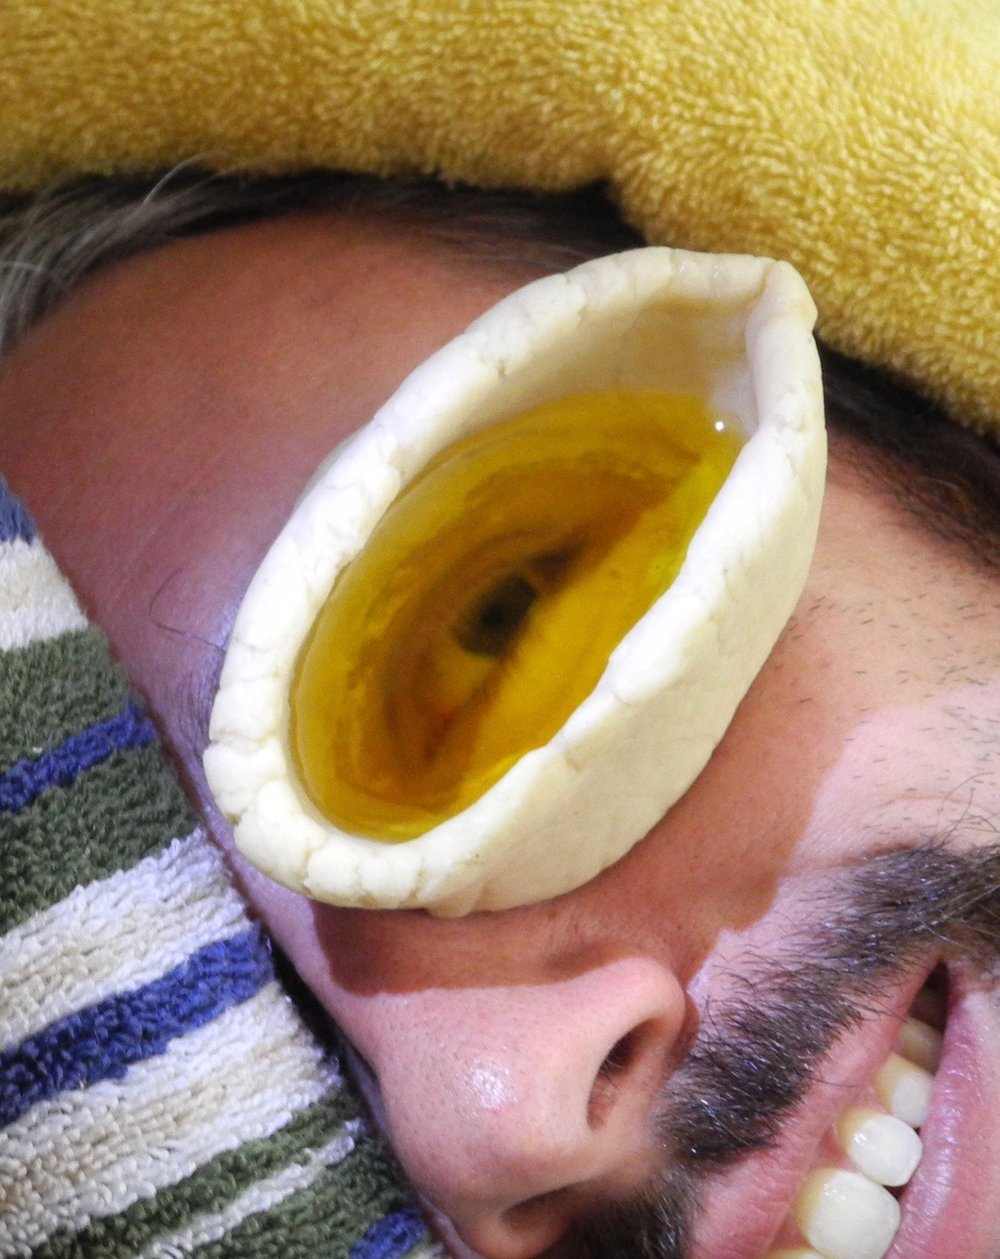 Eye Basti is used to reduce eye strain and stress. The eyes are bathed a warm medicated ghee